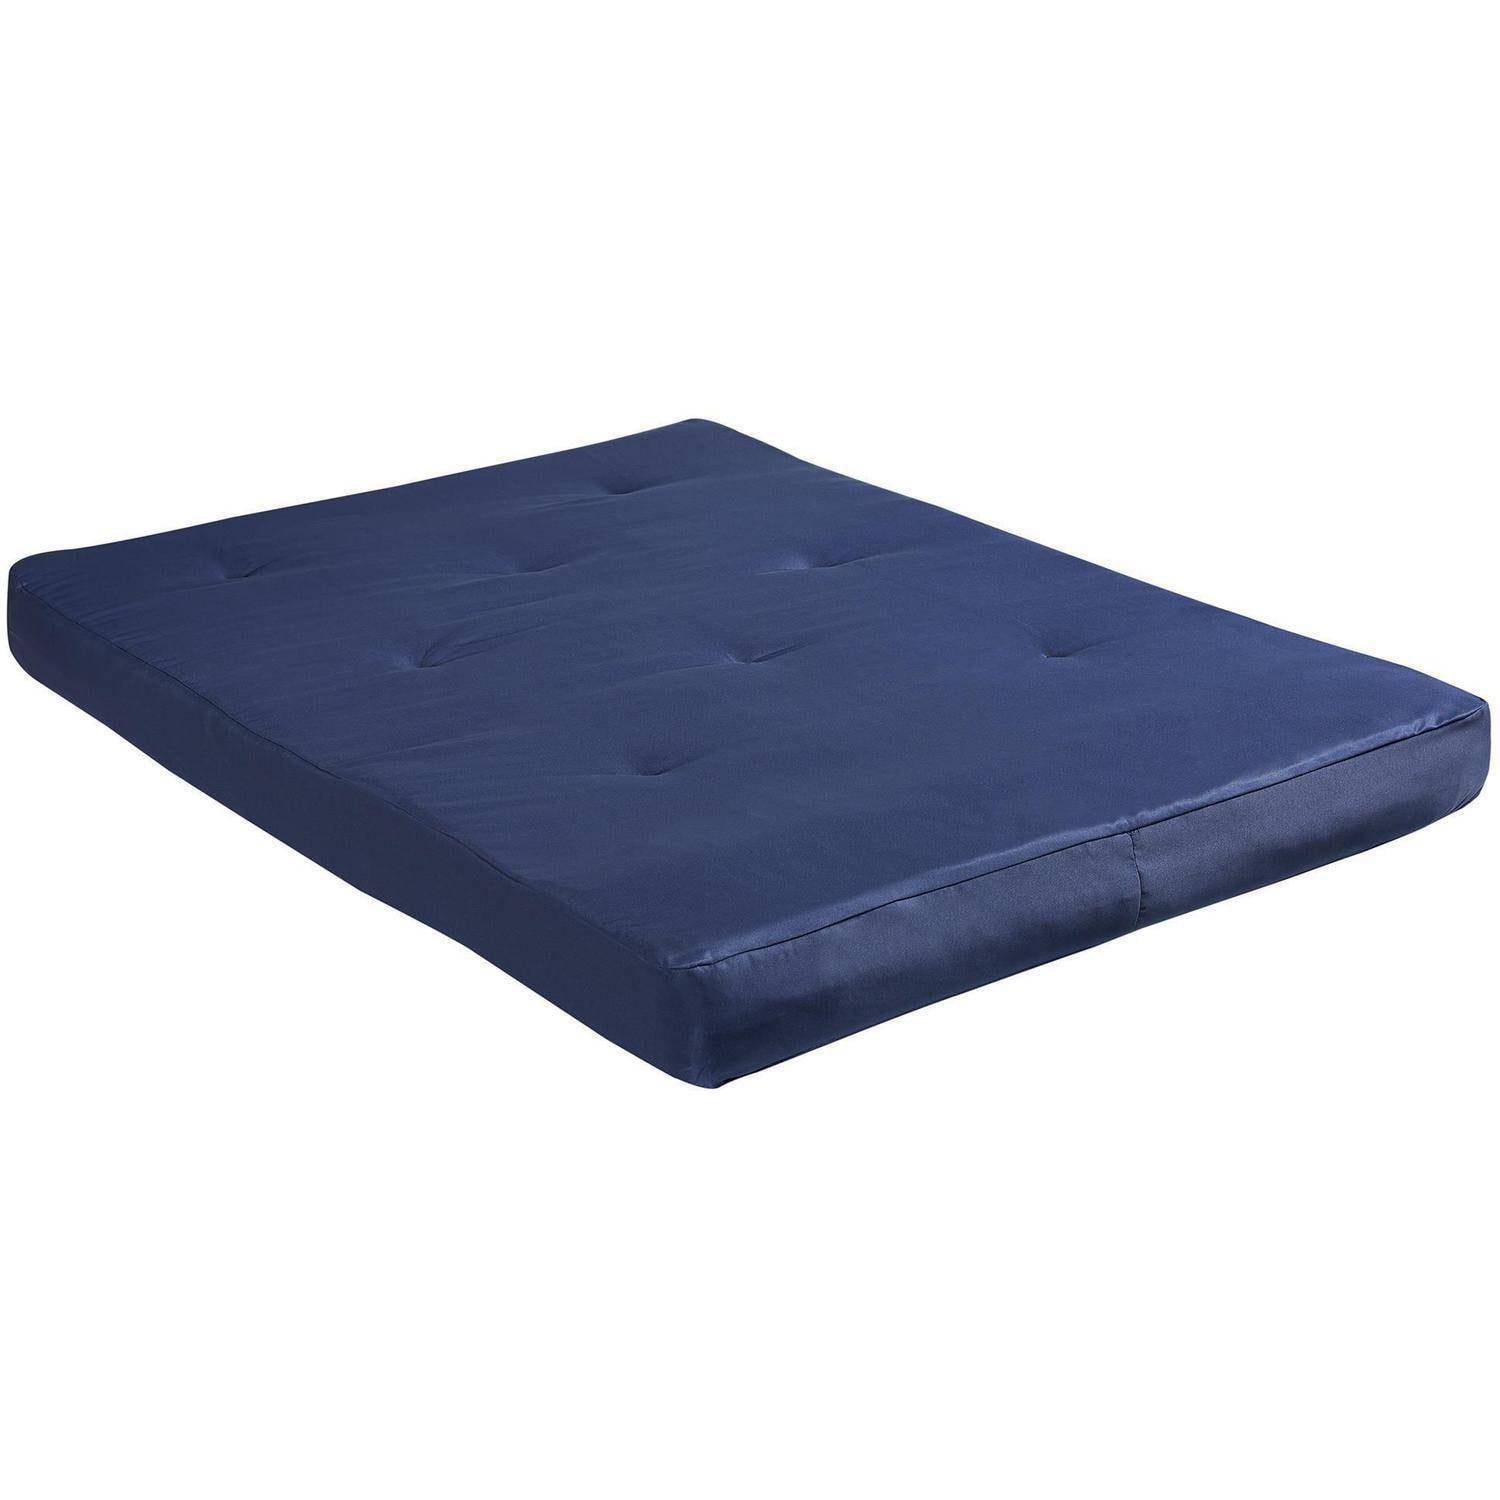 dhp 8   futon mattress full size navy blue futon mattresses   walmart    rh   walmart